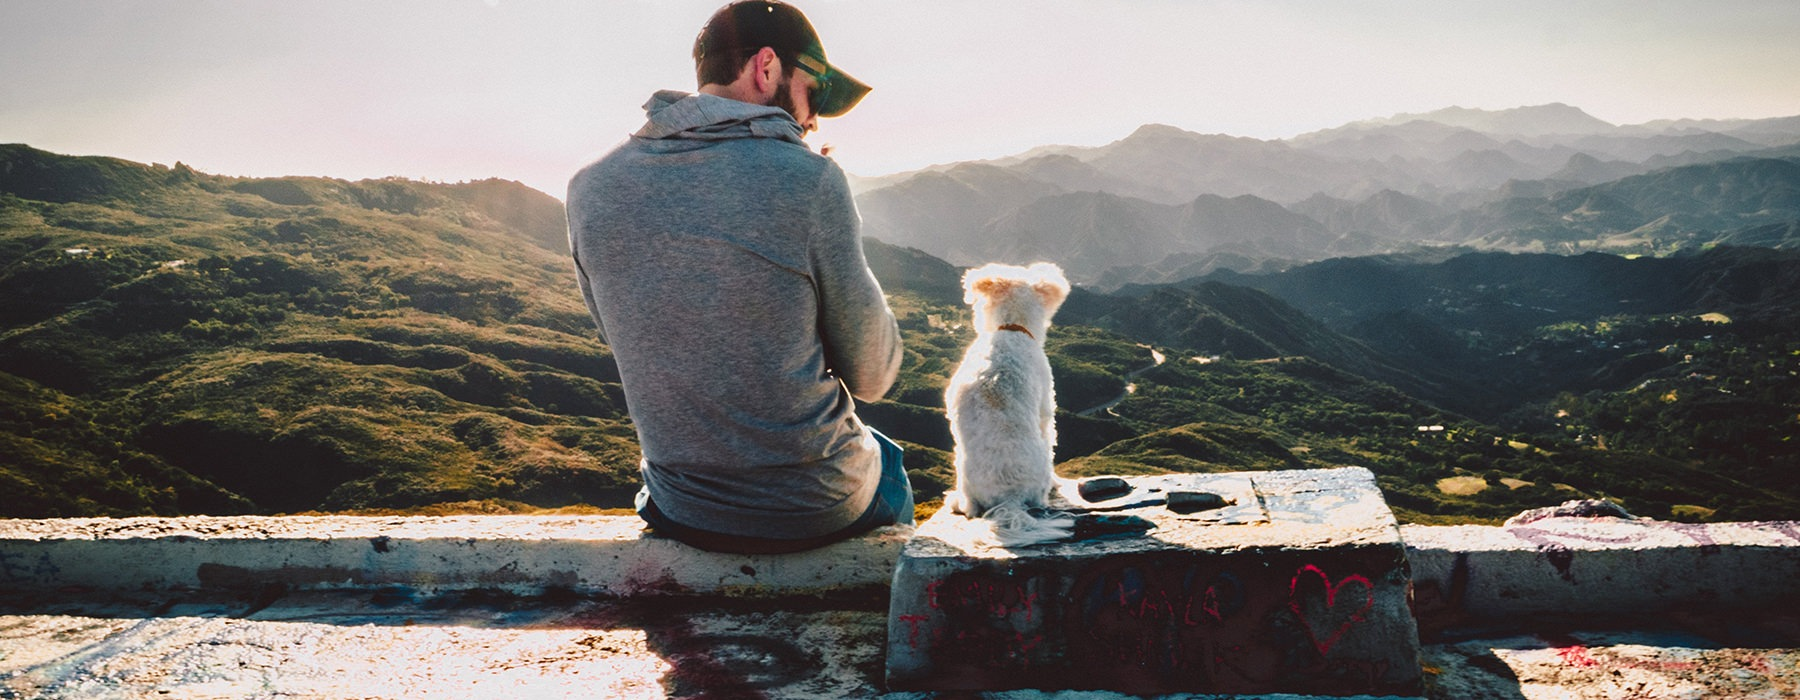 man with dog looking at mountain view